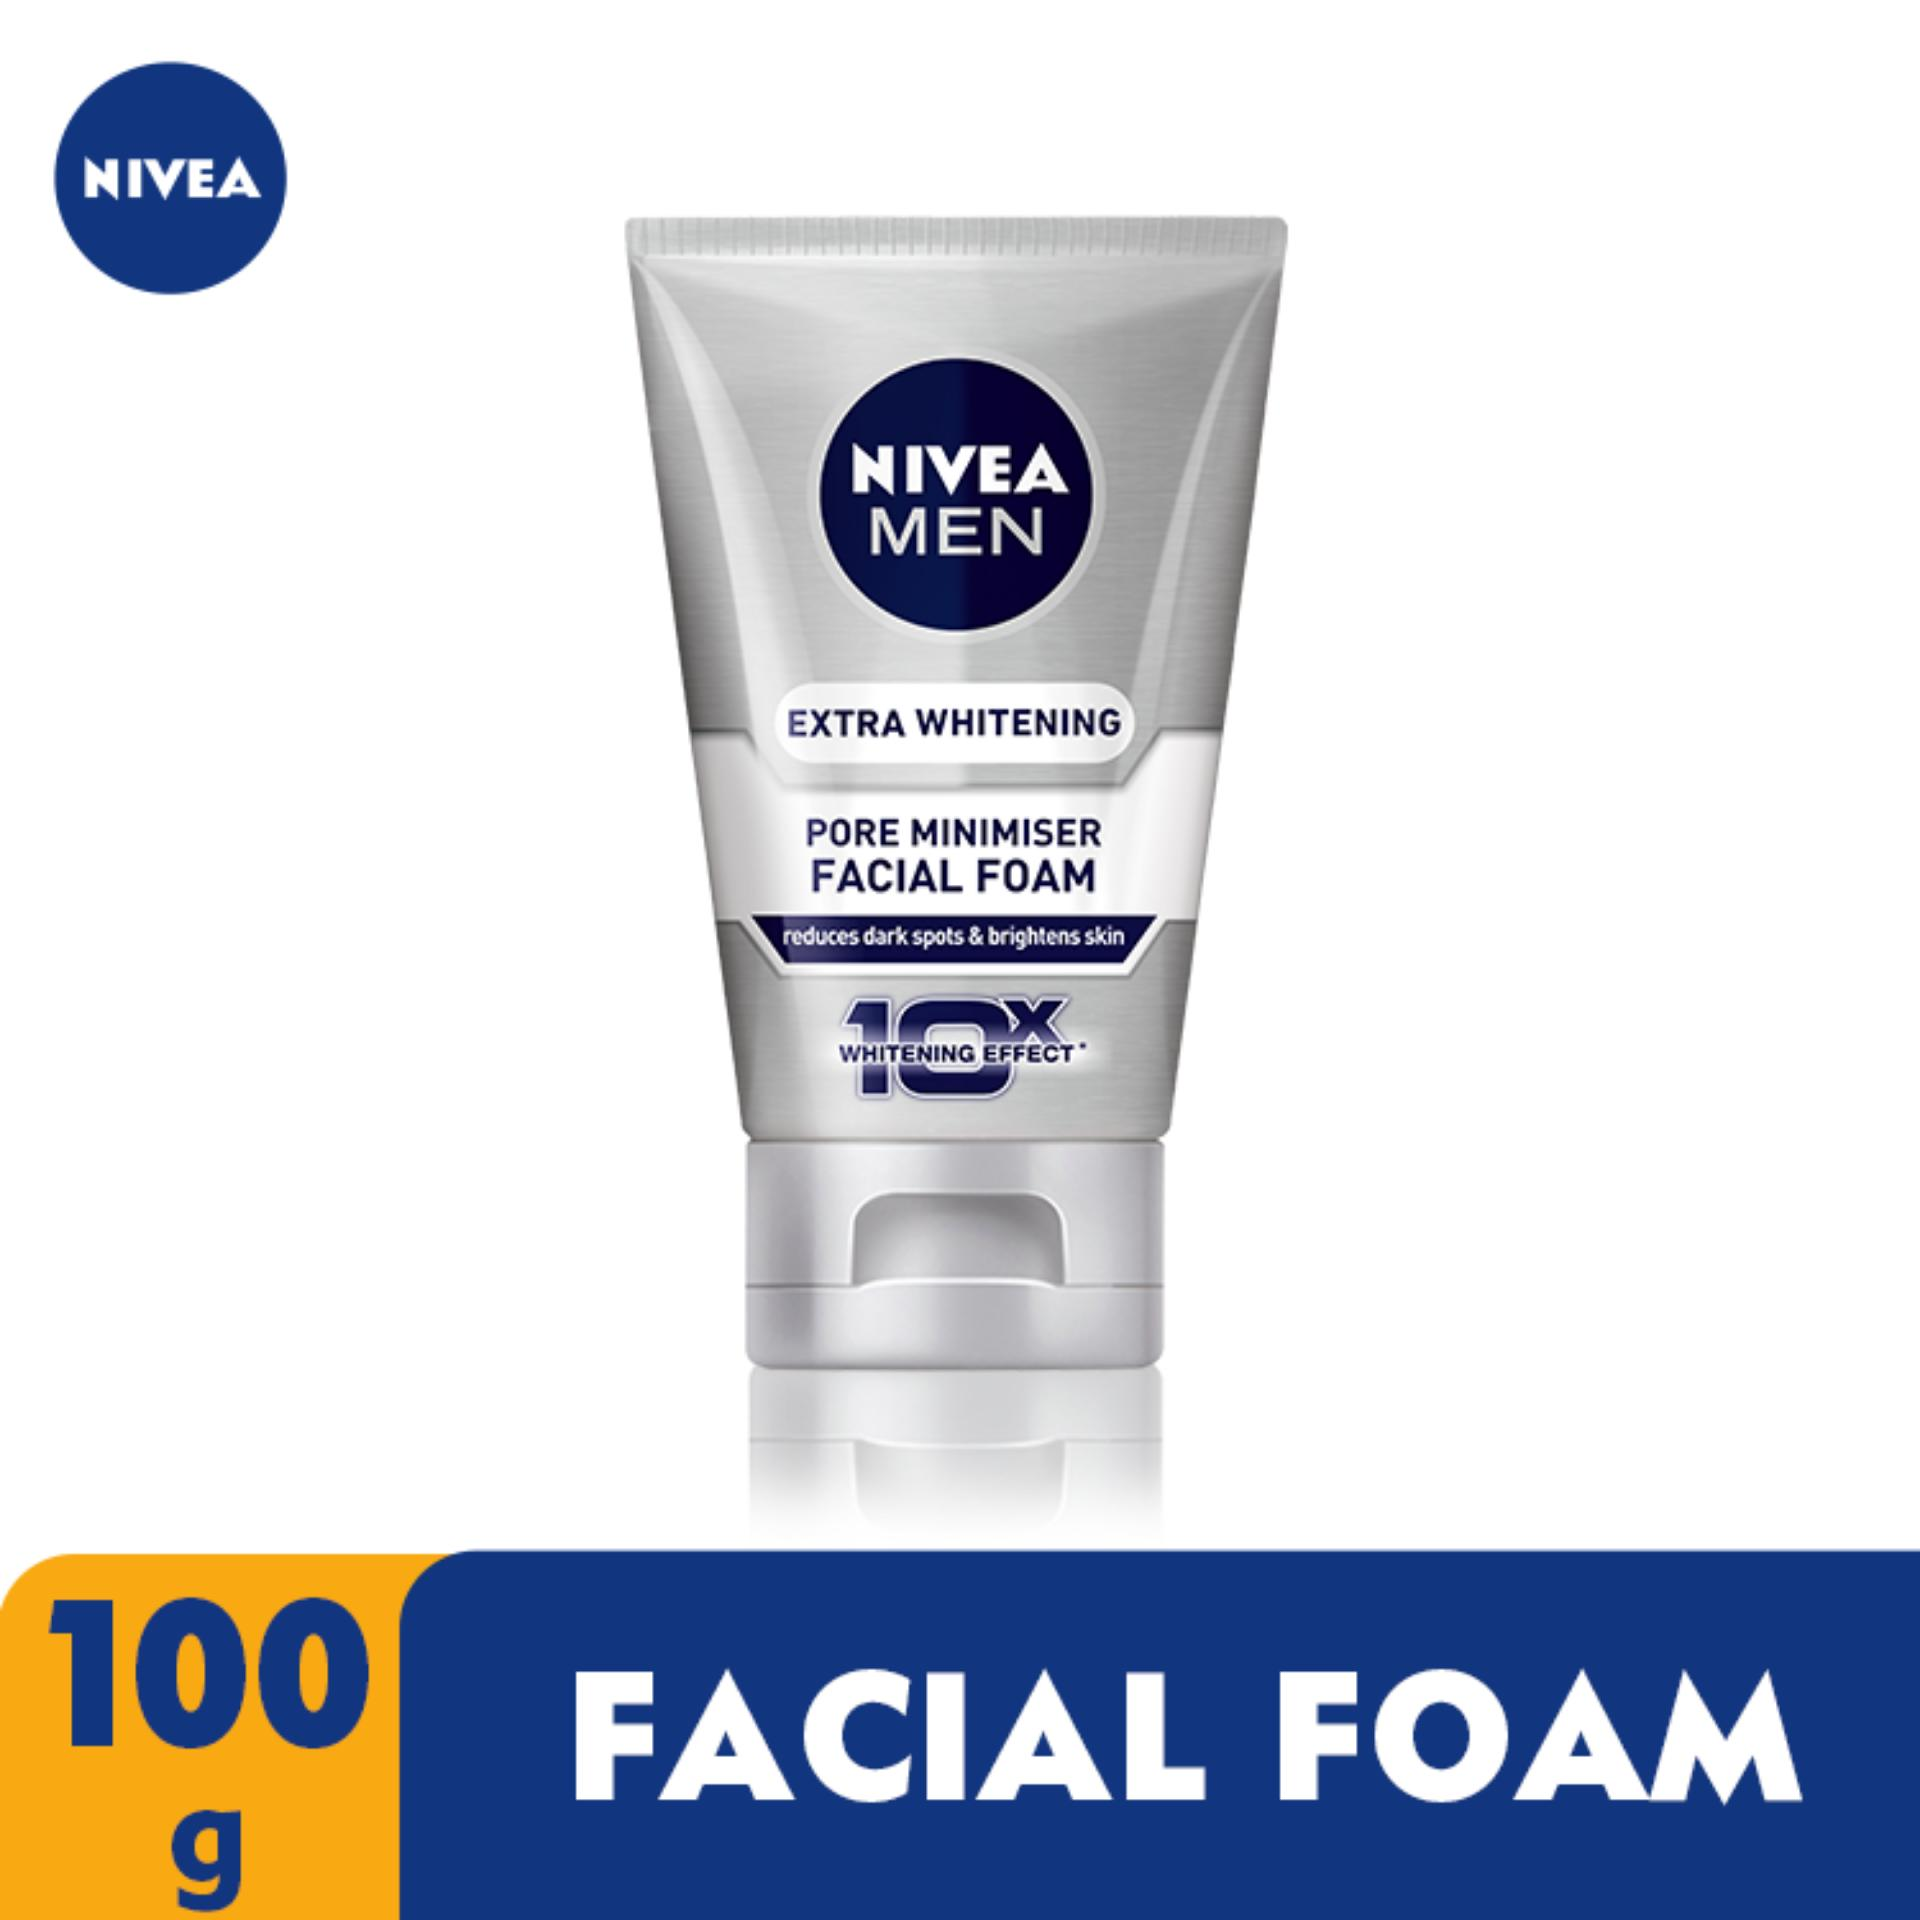 Nivea Philippines Price List Lotion Deodorant Baby Men Dry Impact Roll On 50ml Wipes Facial Foam Cleanser For Sale Lazada